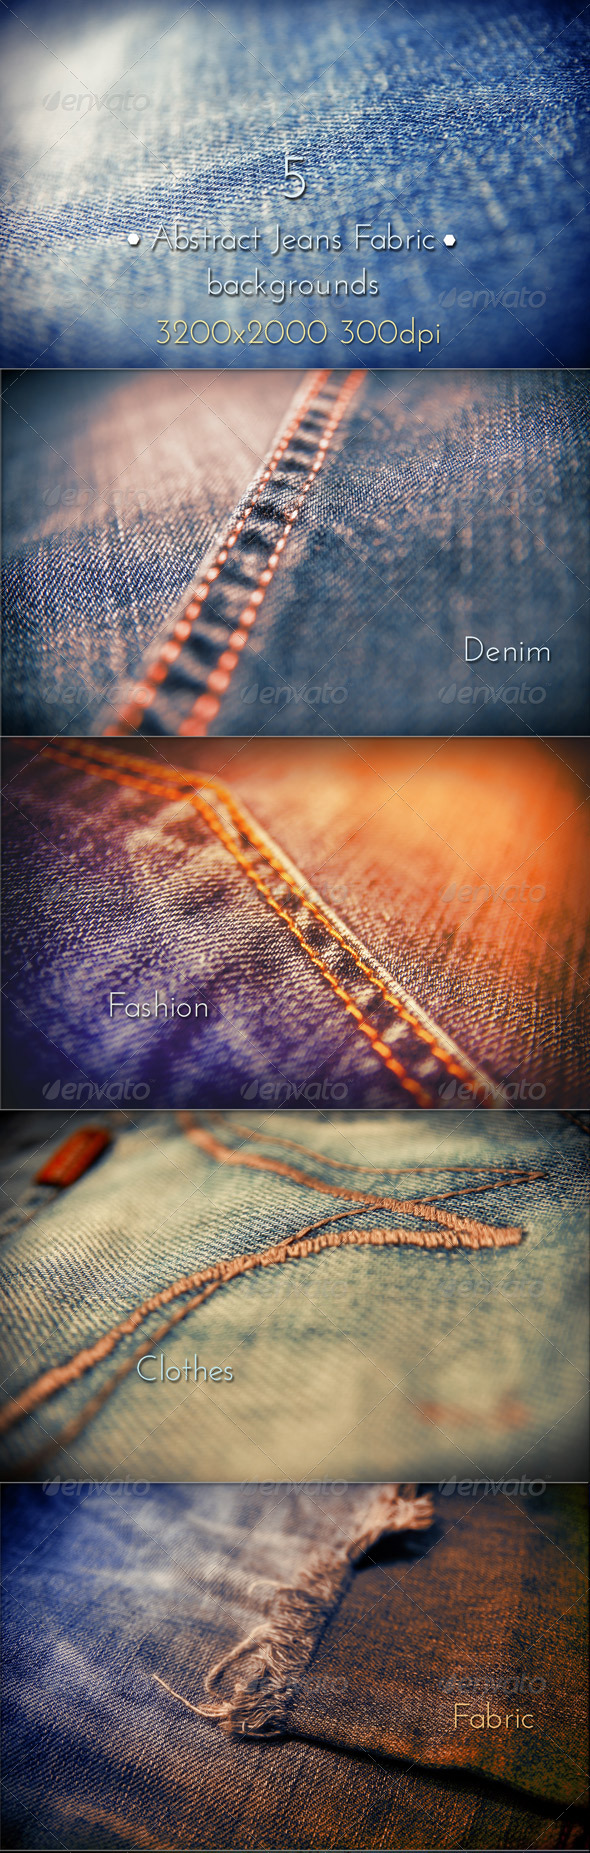 GraphicRiver Abstract Jeans Fabric 8495984